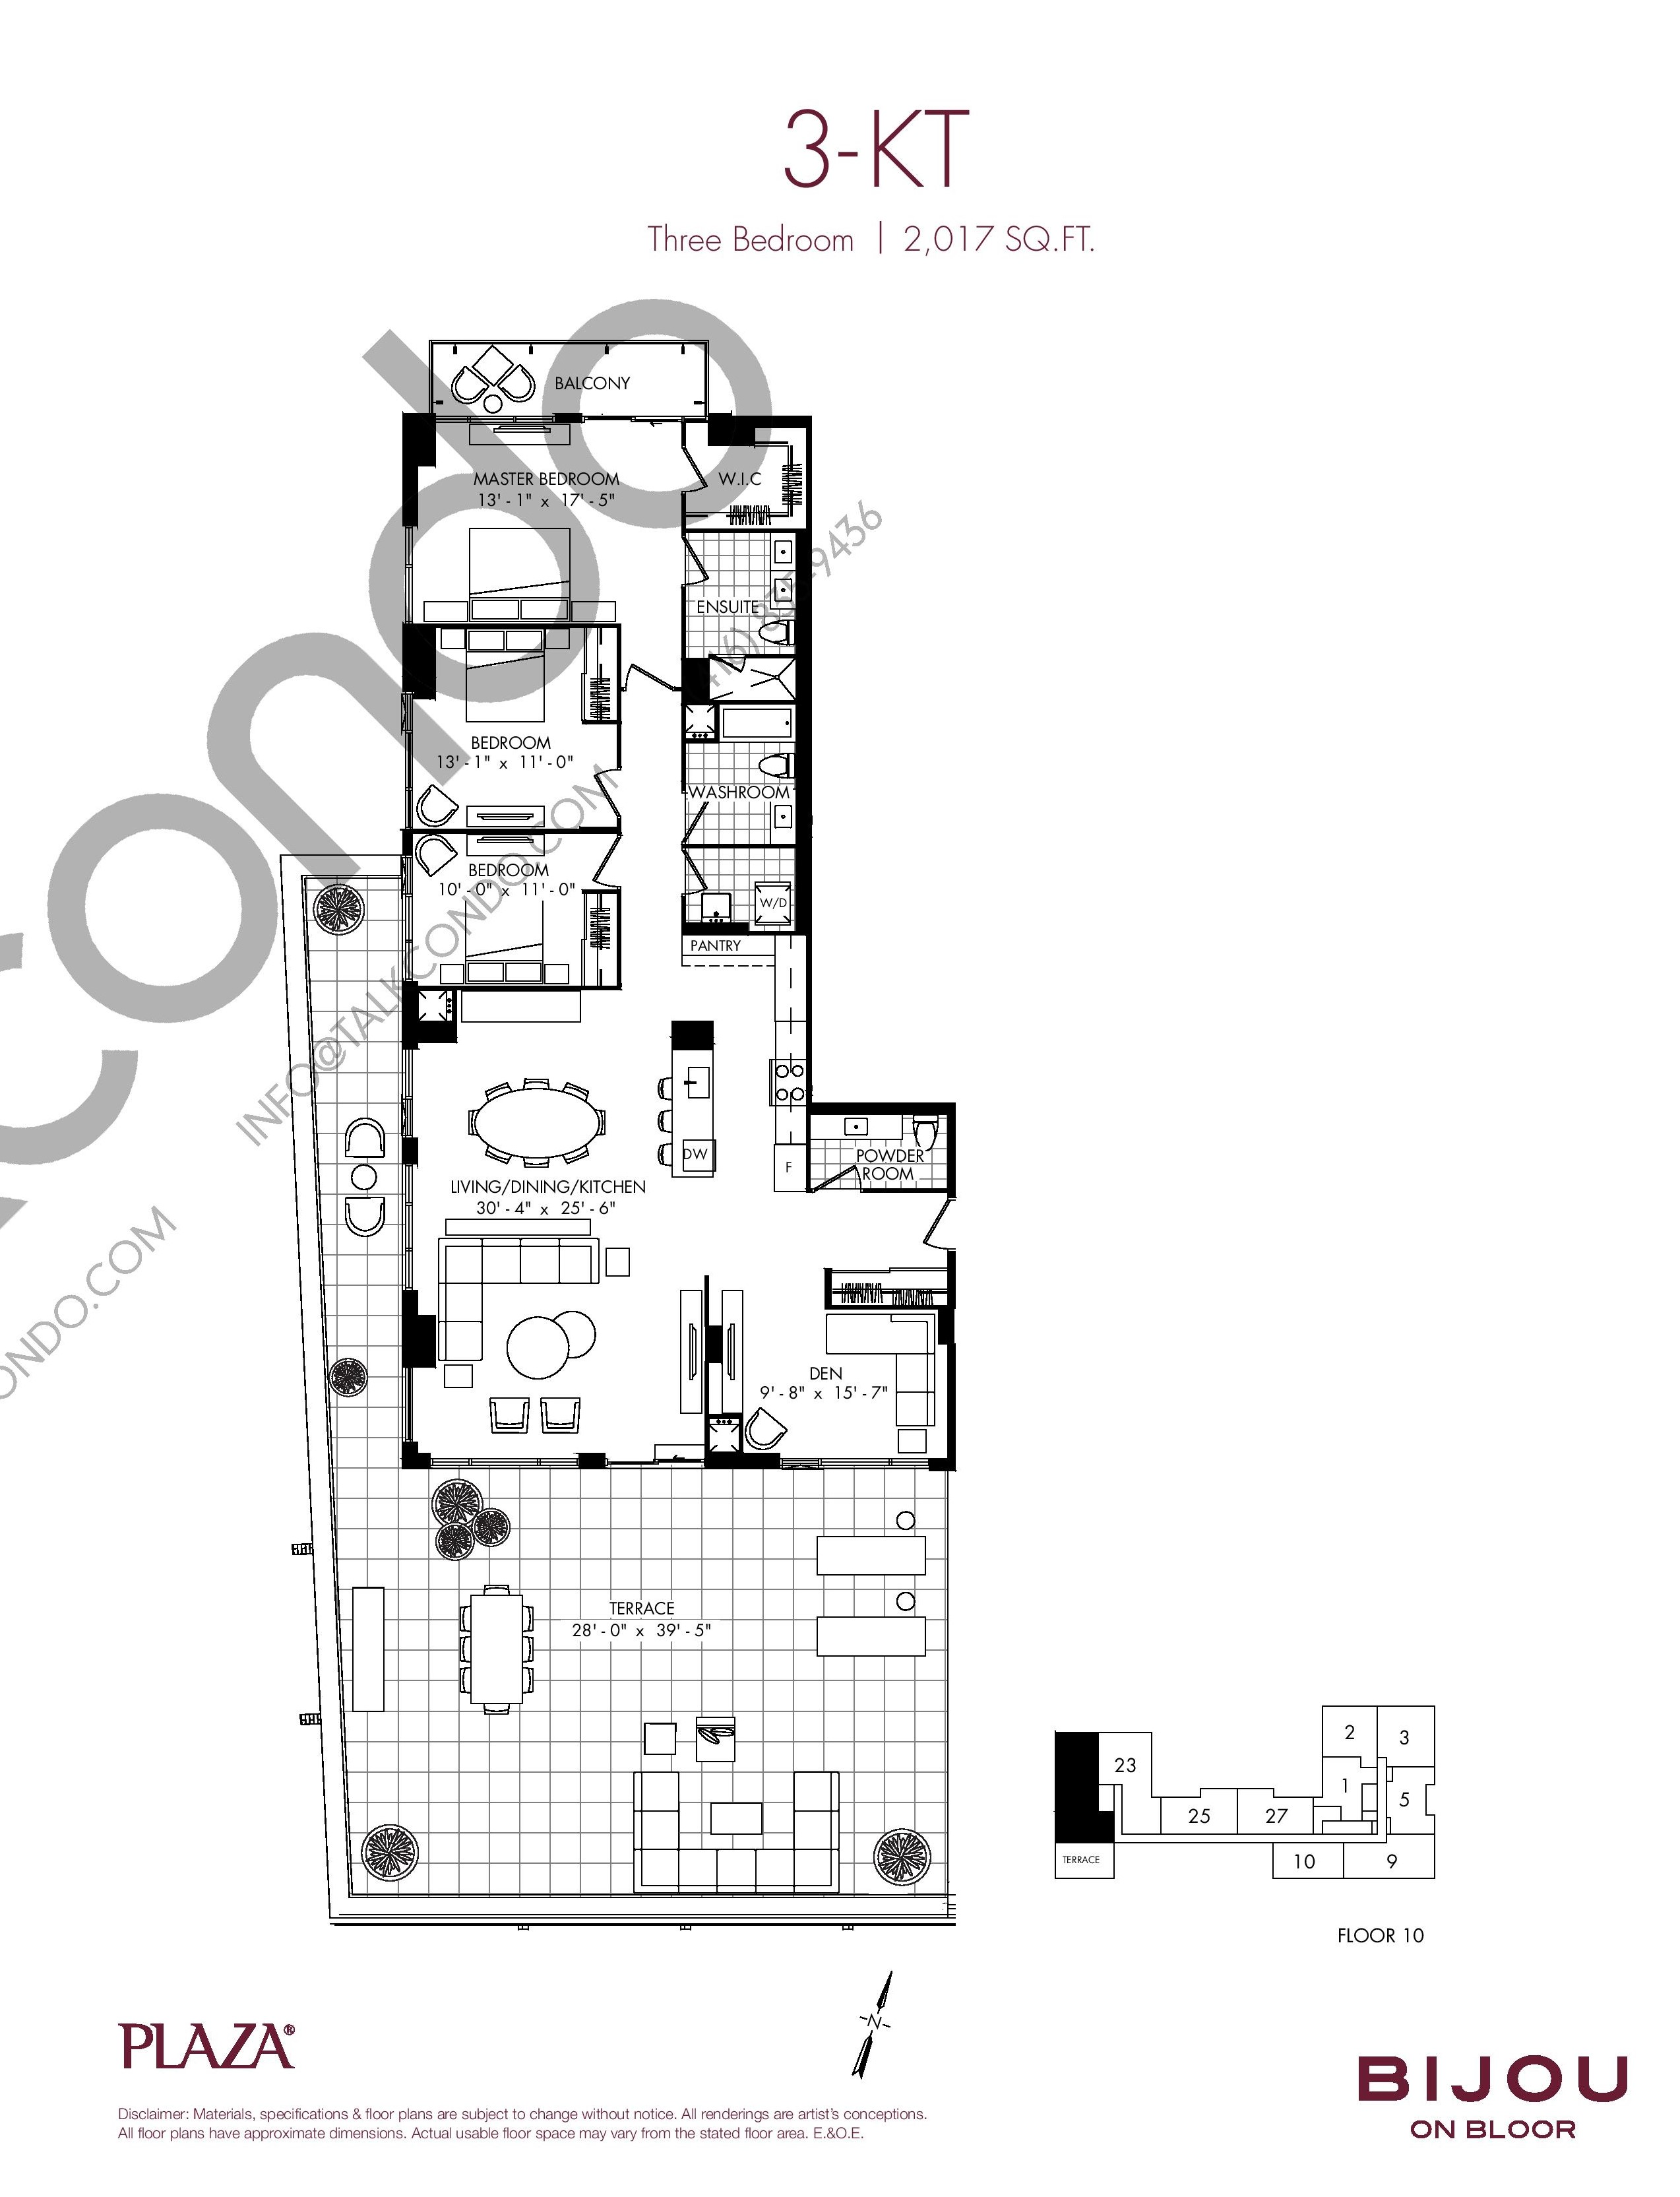 3-KT Floor Plan at Bijou On Bloor Condos - 2017 sq.ft